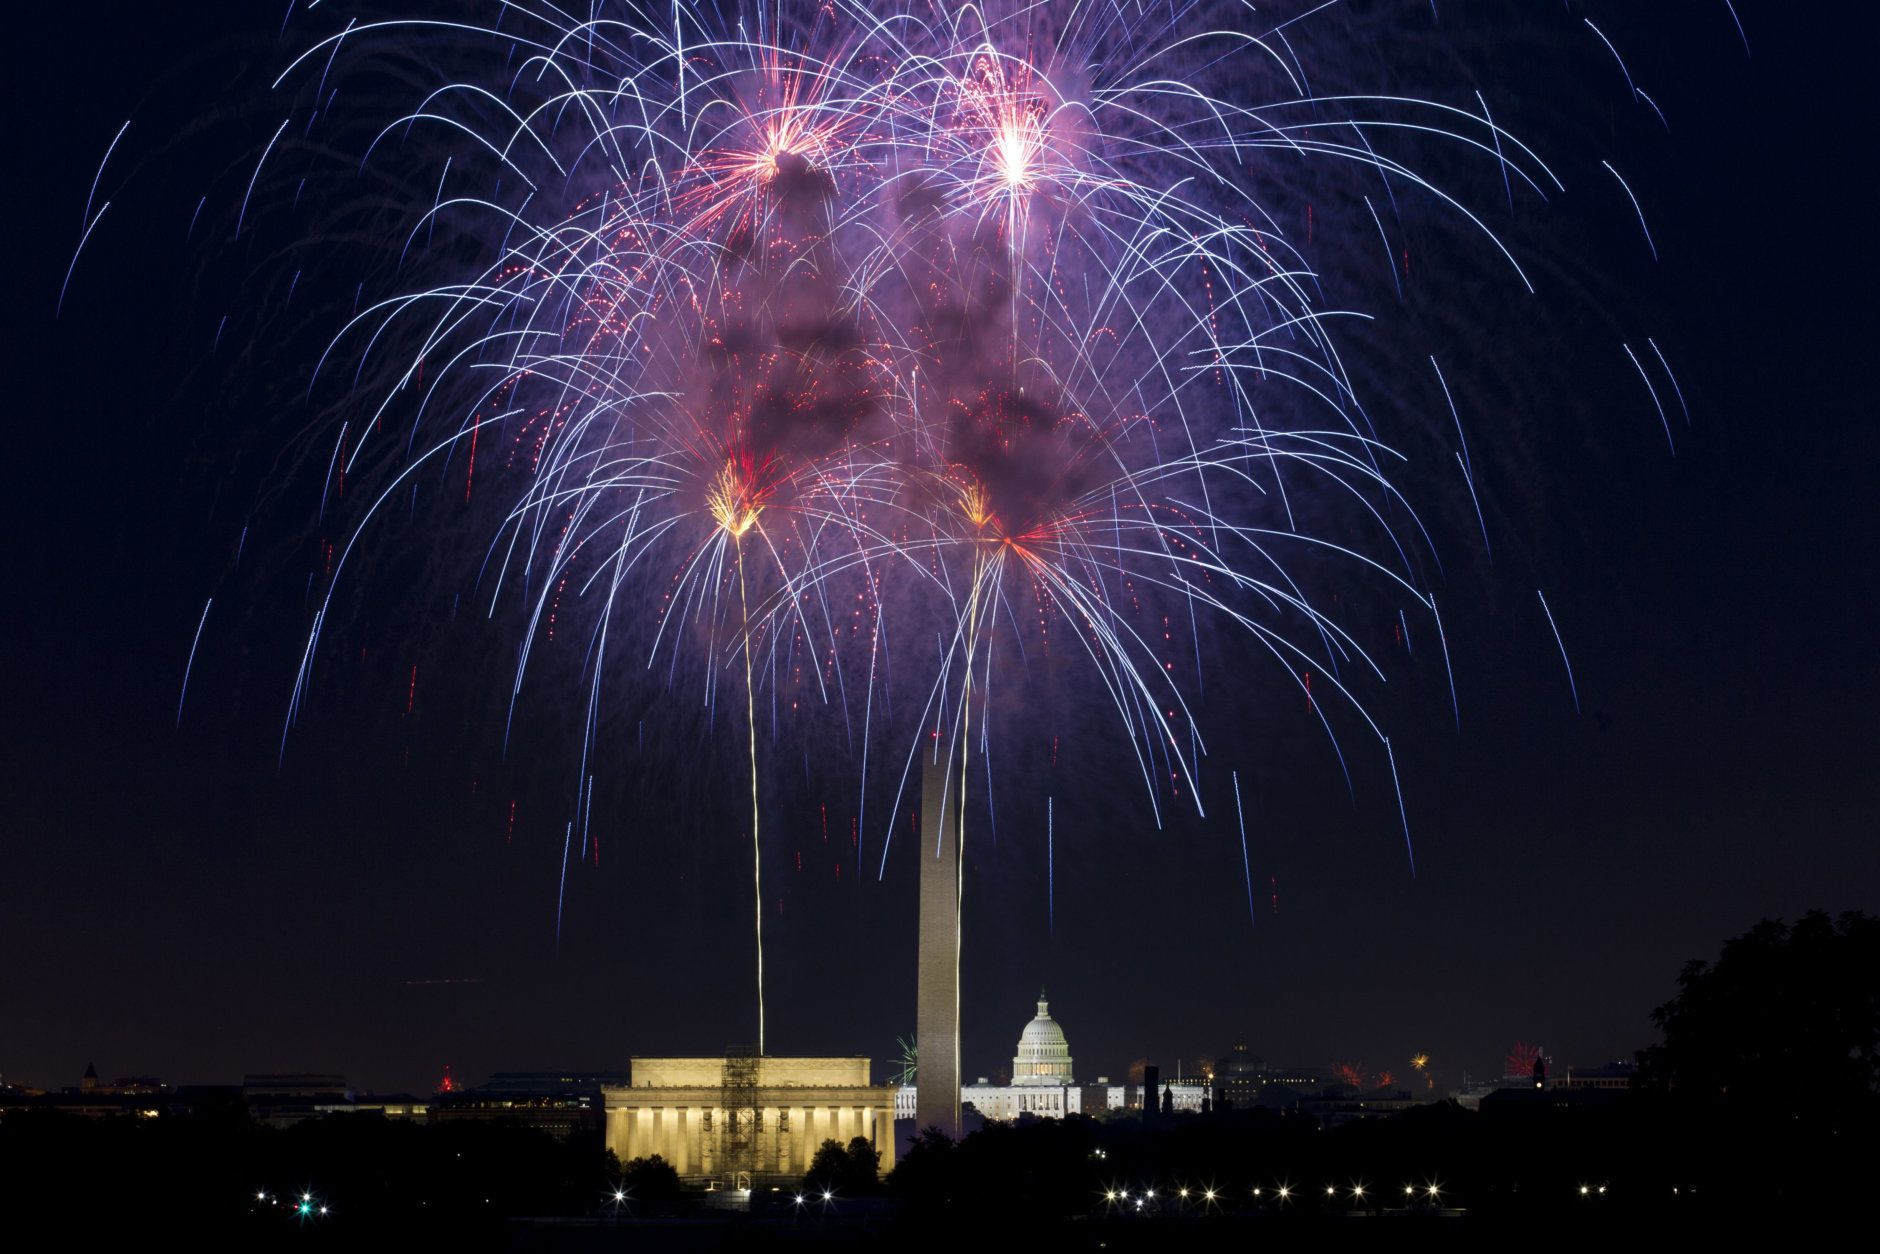 Fireworks explode over Lincoln Memorial, Washington Monument and U.S. Capitol along the National Mall in Washington, Wednesday, July 4, 2018, during the Fourth of July celebration. (AP Photo/Jose Luis Magana)